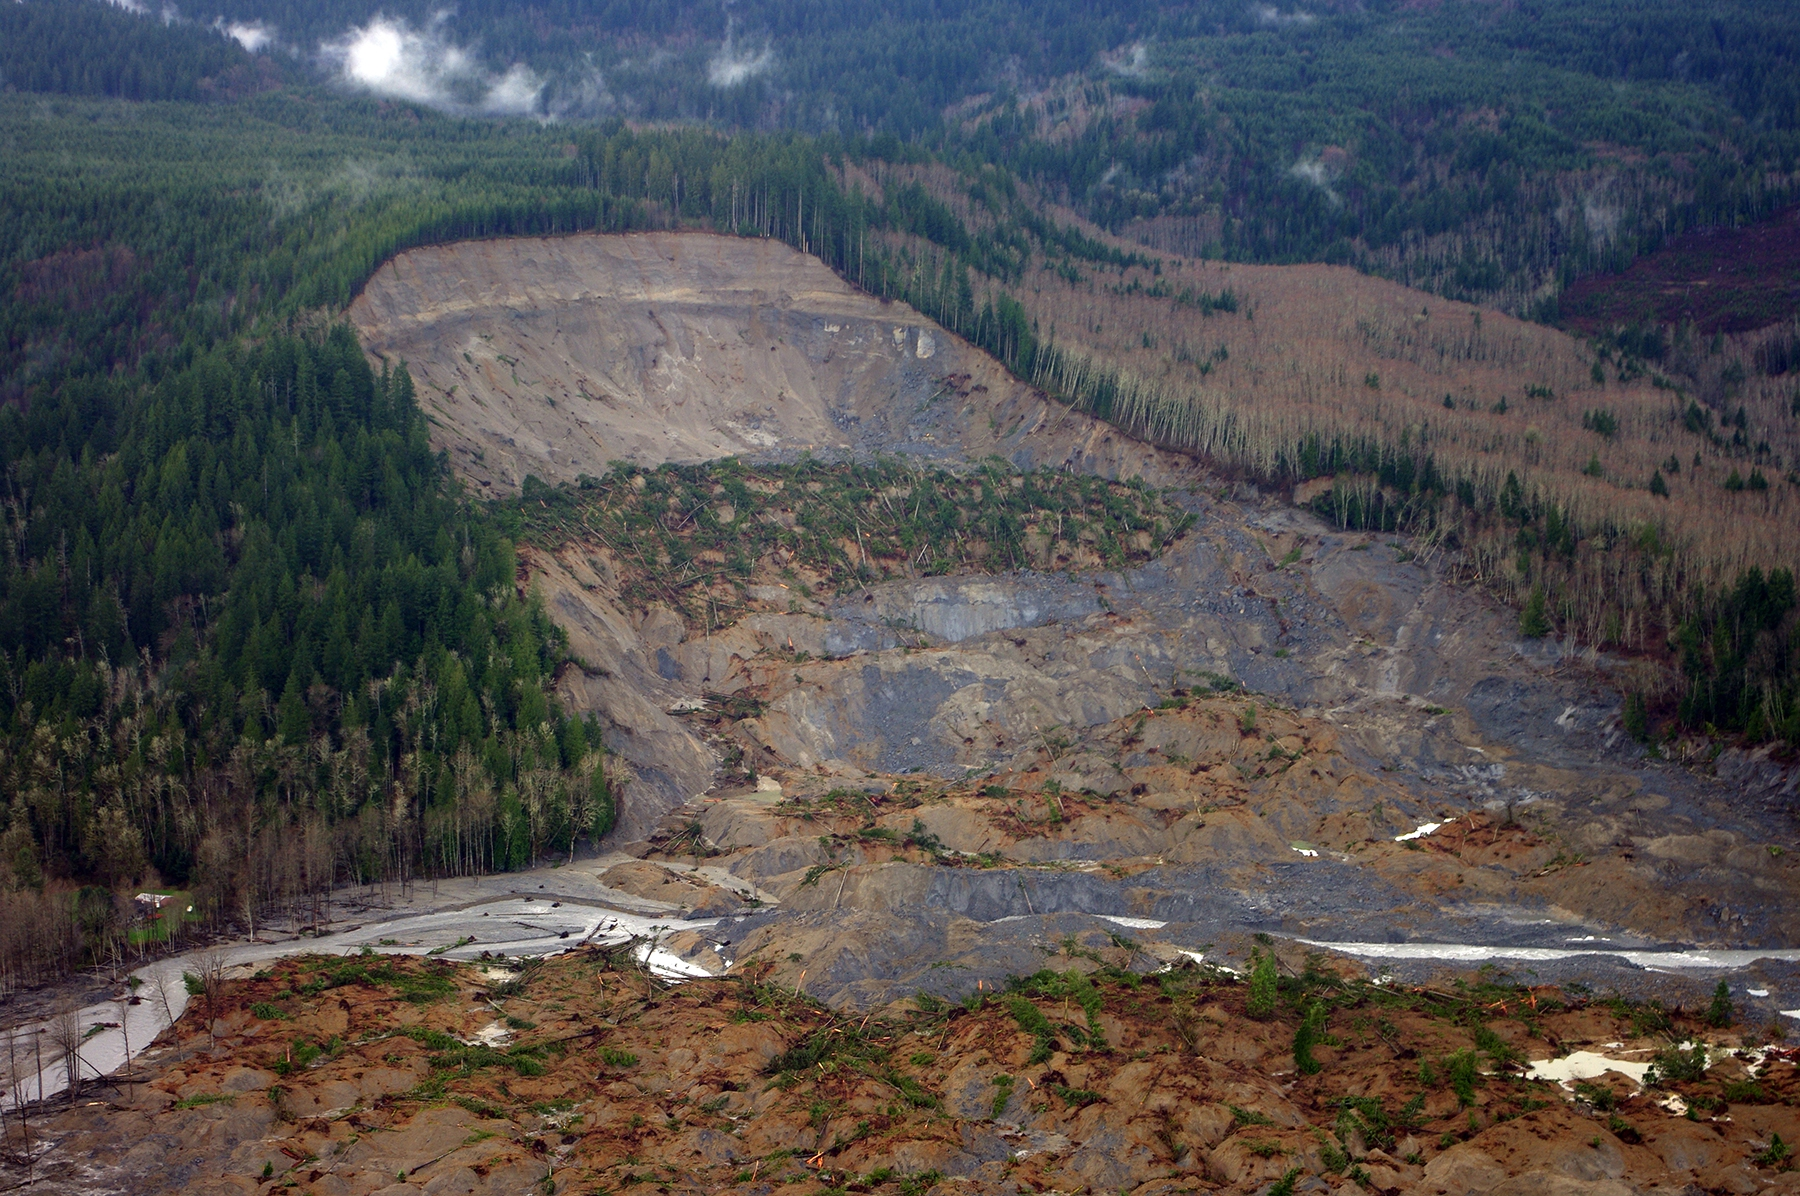 The 2014 Oso landslide moved an estimated 270 million ft3 of rocks, dirt, trees, and other debris down the slope. The direct costs for repair are greater than $80 million. Image Credit: Jonathan Godt, U.S. Geological Survey (Public Domain)